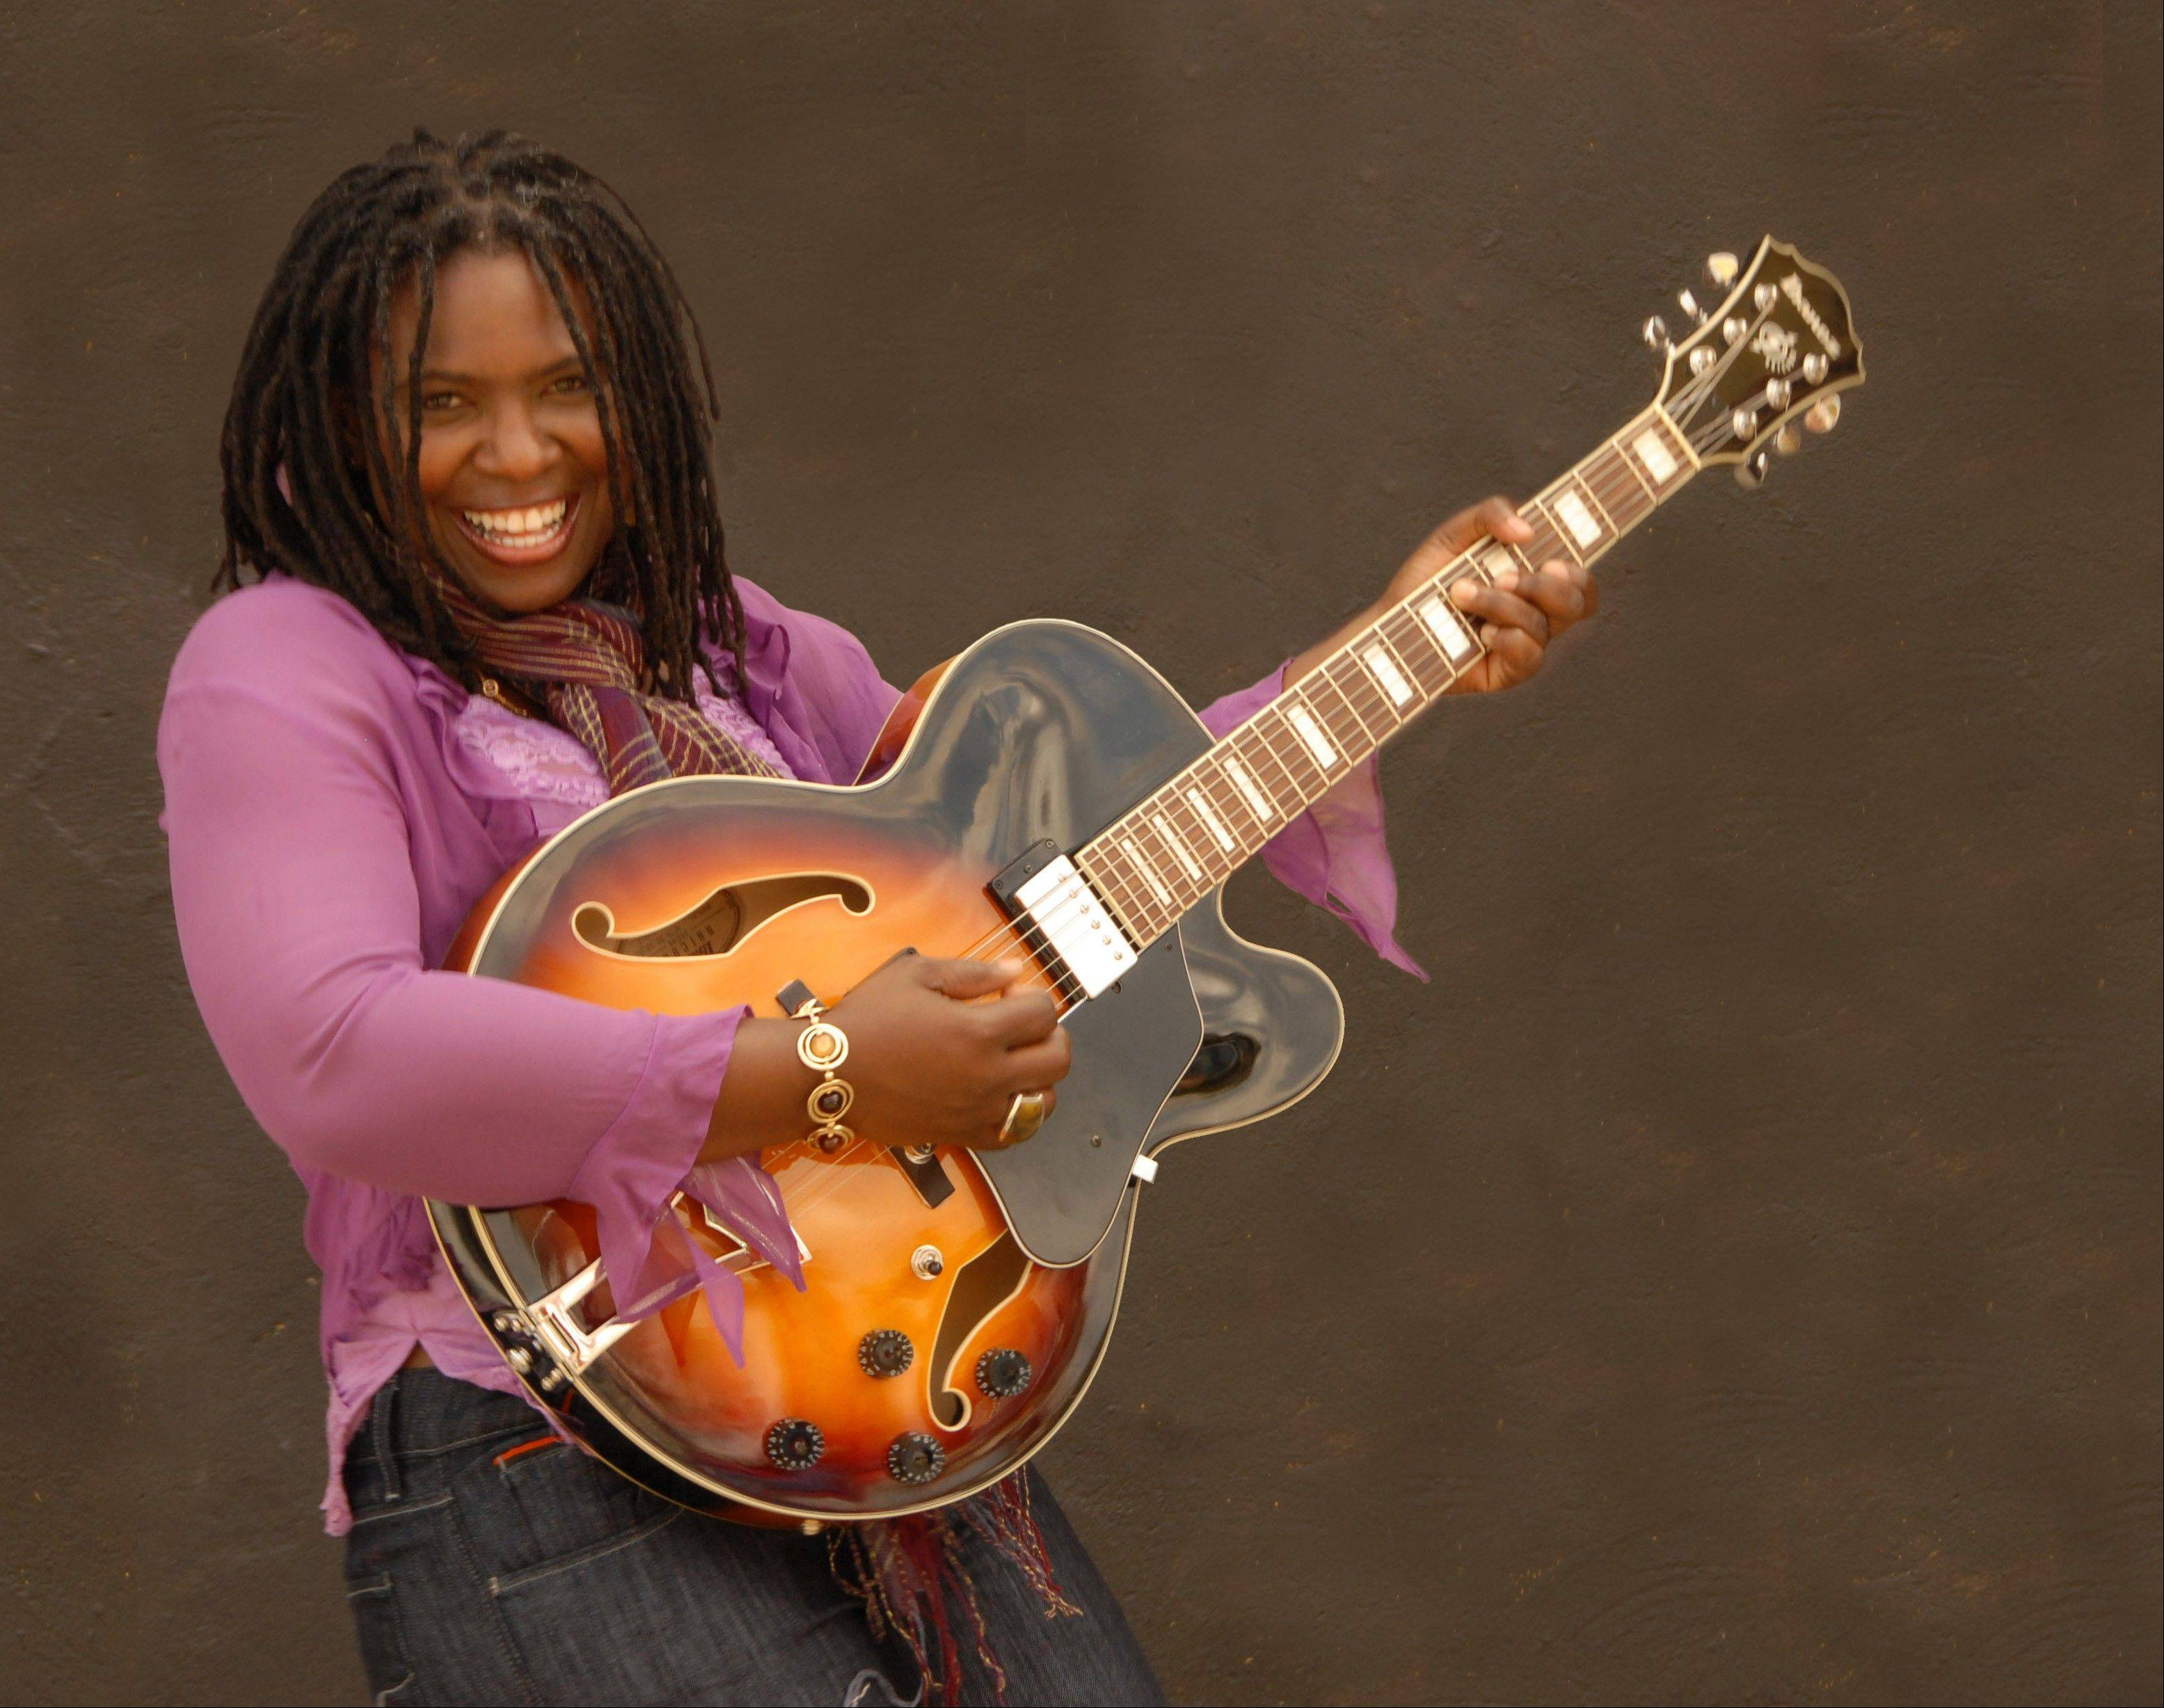 Blues guitarist and vocalist Ruthie Foster teams up with Paul Thorn for Soul Salvation at the Prairie Center for the Arts in Schaumburg.